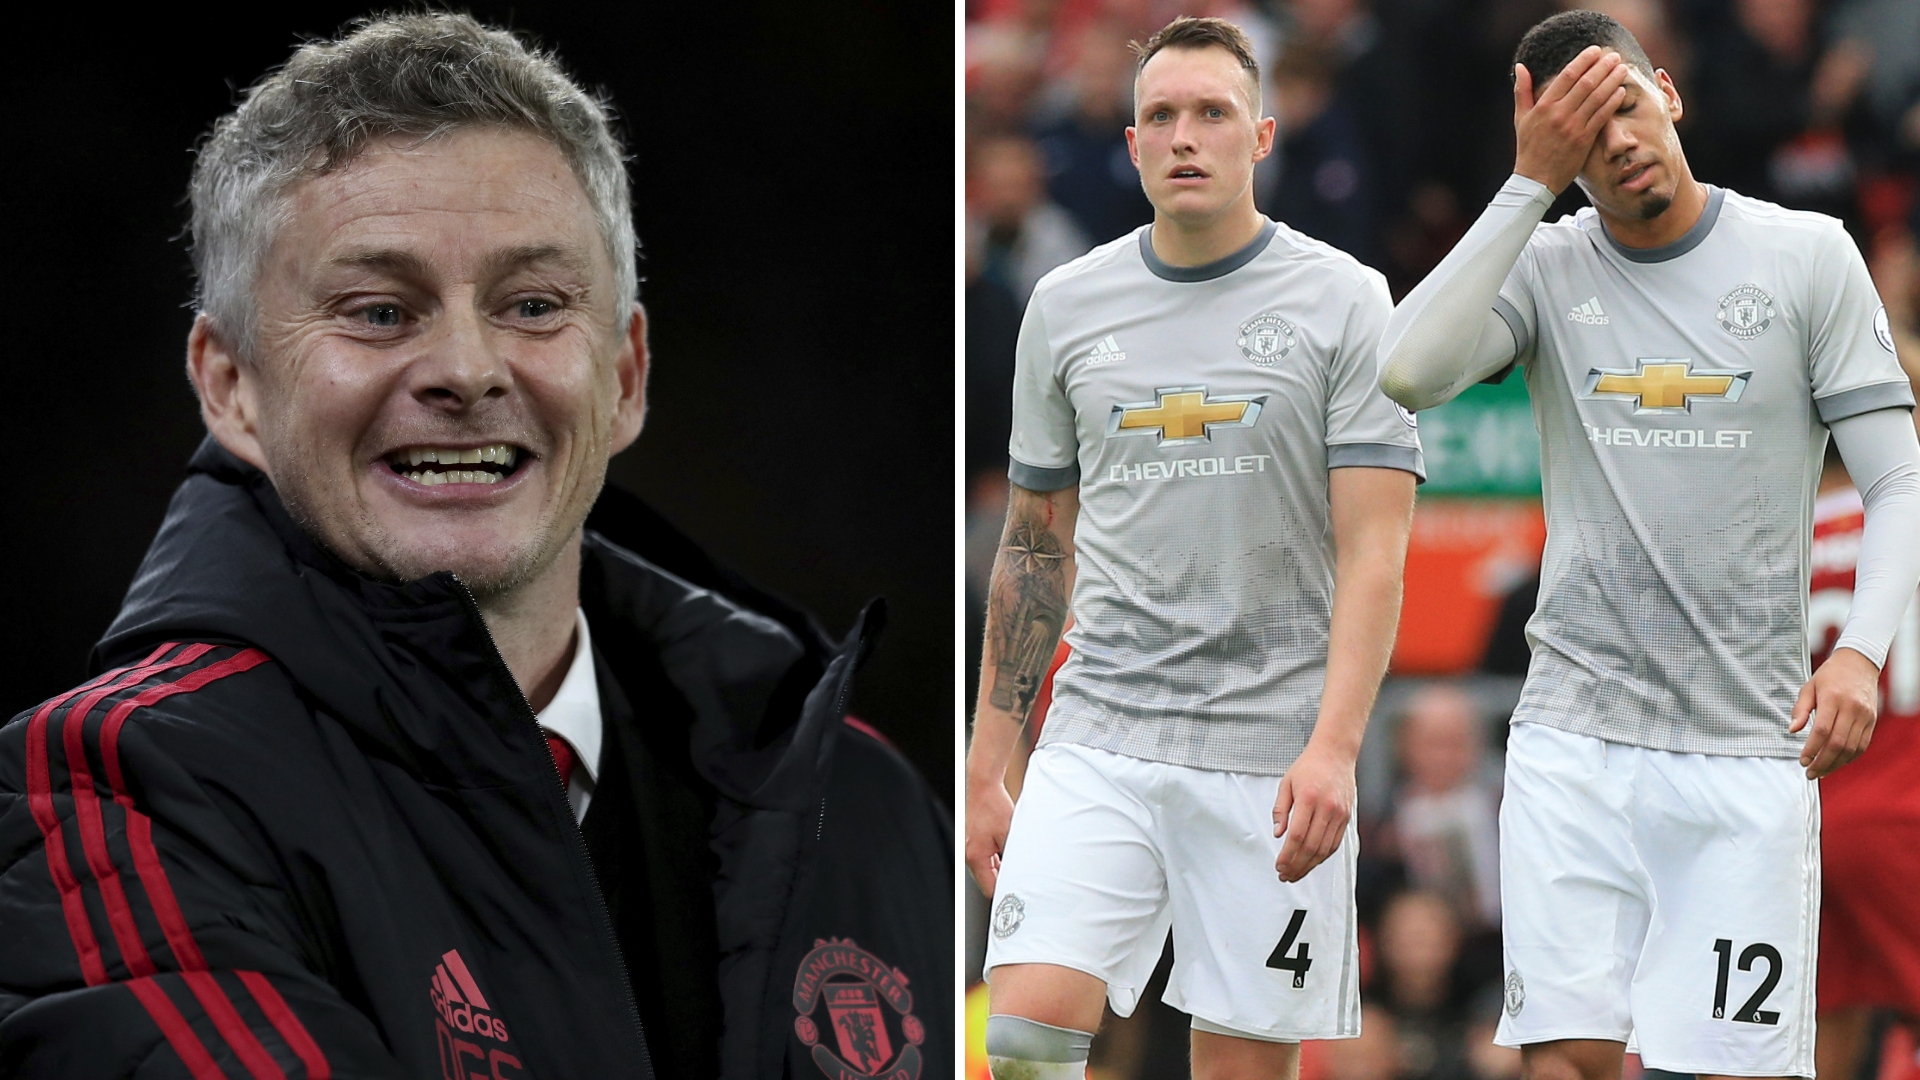 Ole Gunnar Solskjær's Brilliant Response To Journalist After Asking Him About Lack Of Centre-Backs